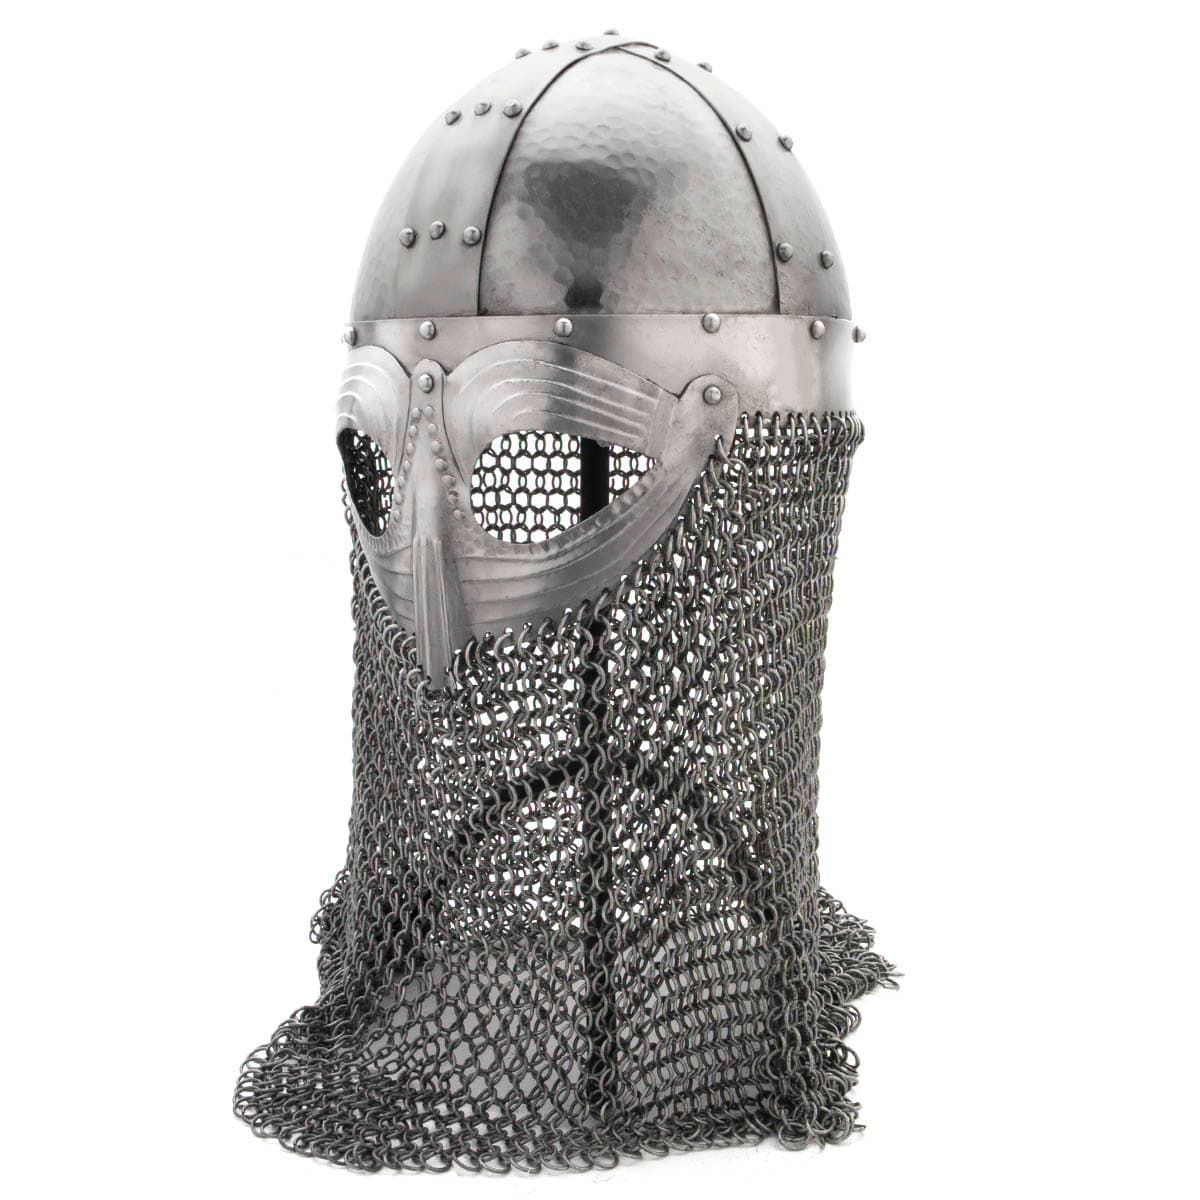 Hammered 18 Gauge Steel Spangenhelm Viking Helmet With Aventail Mail skirt and Hammered Skull